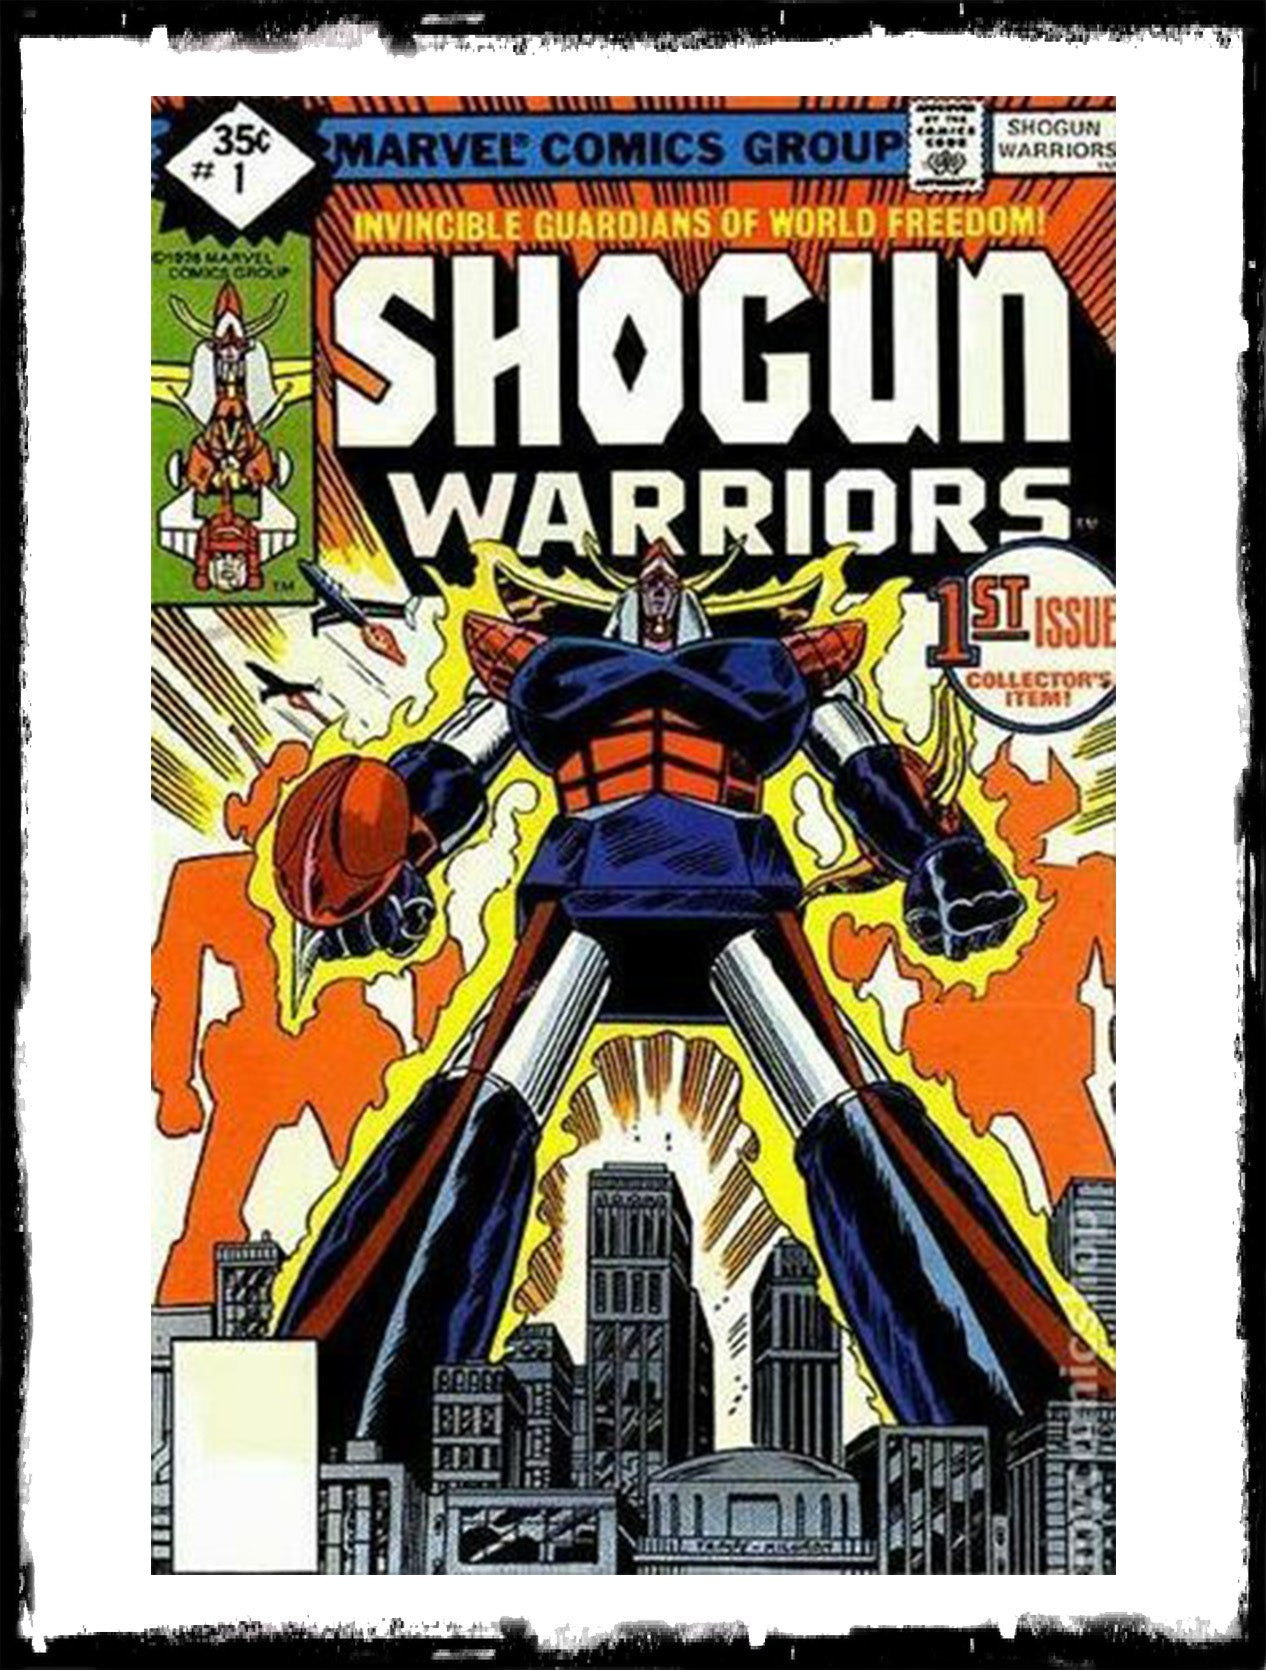 SHOGUN WARRIORS - #1 1ST APP OF ALL CHARACERS (1979 - VF-/VF)